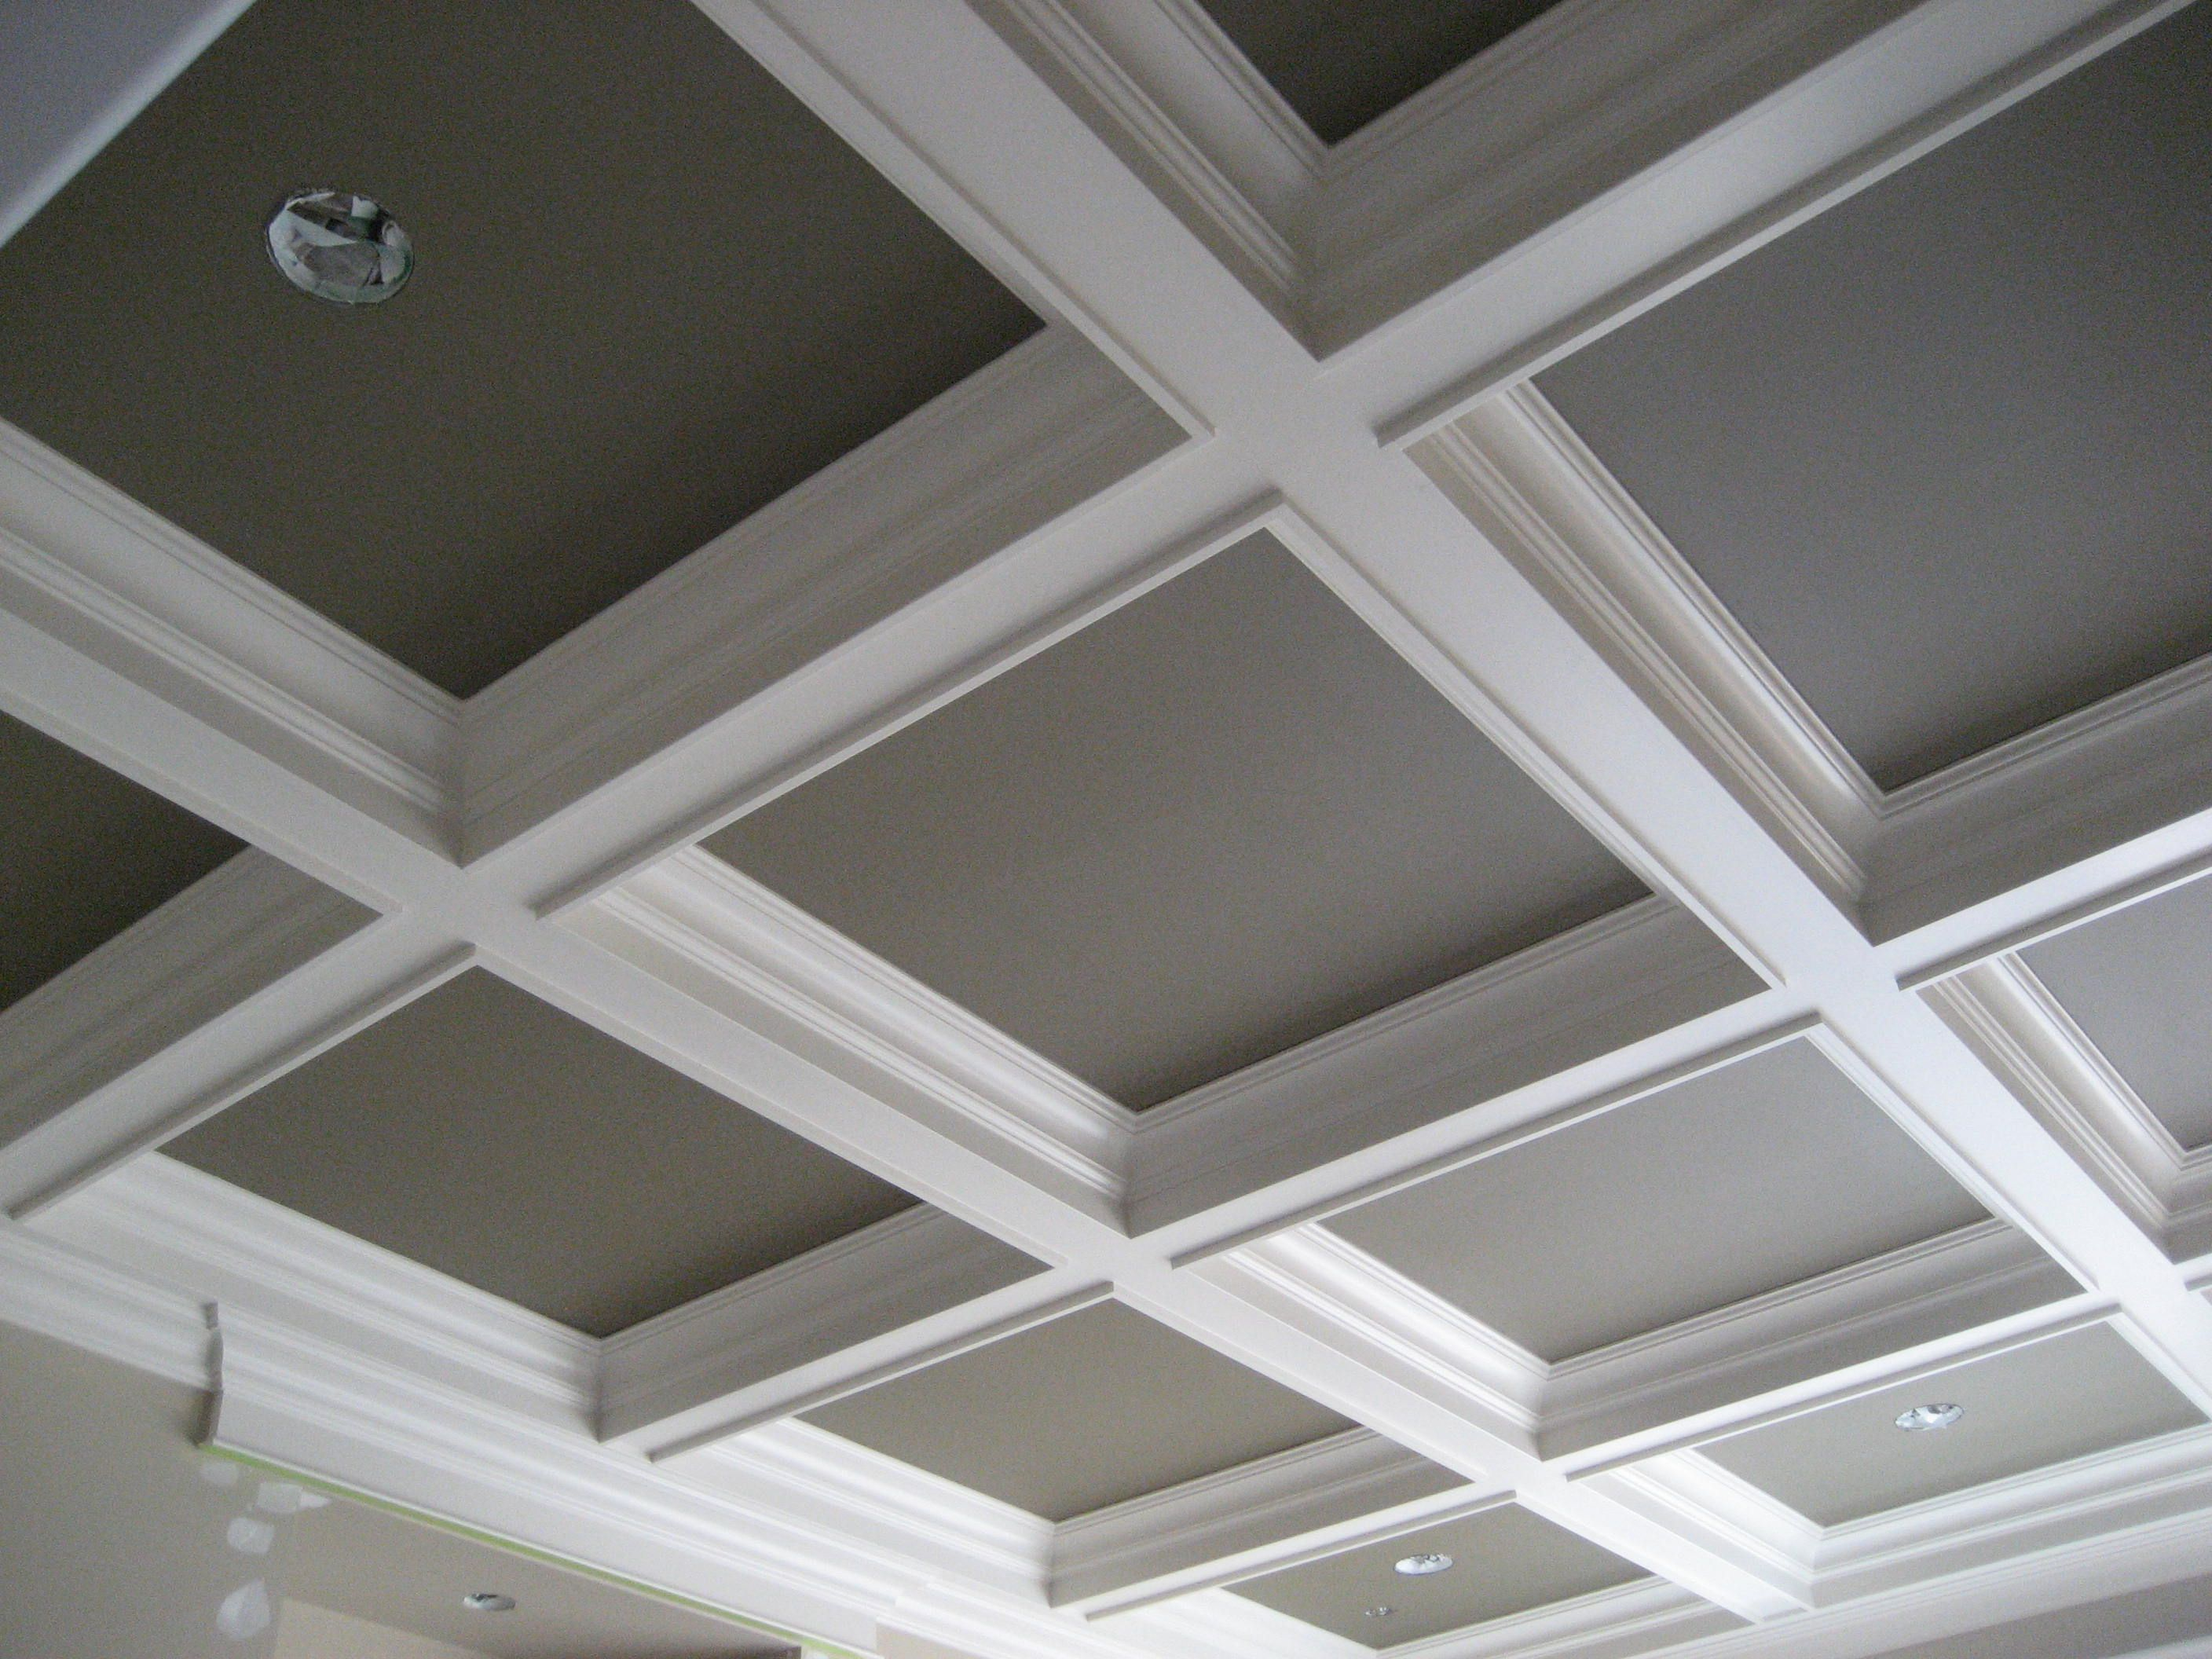 How to build a coffered ceiling - Coffered Ceiling Google Search